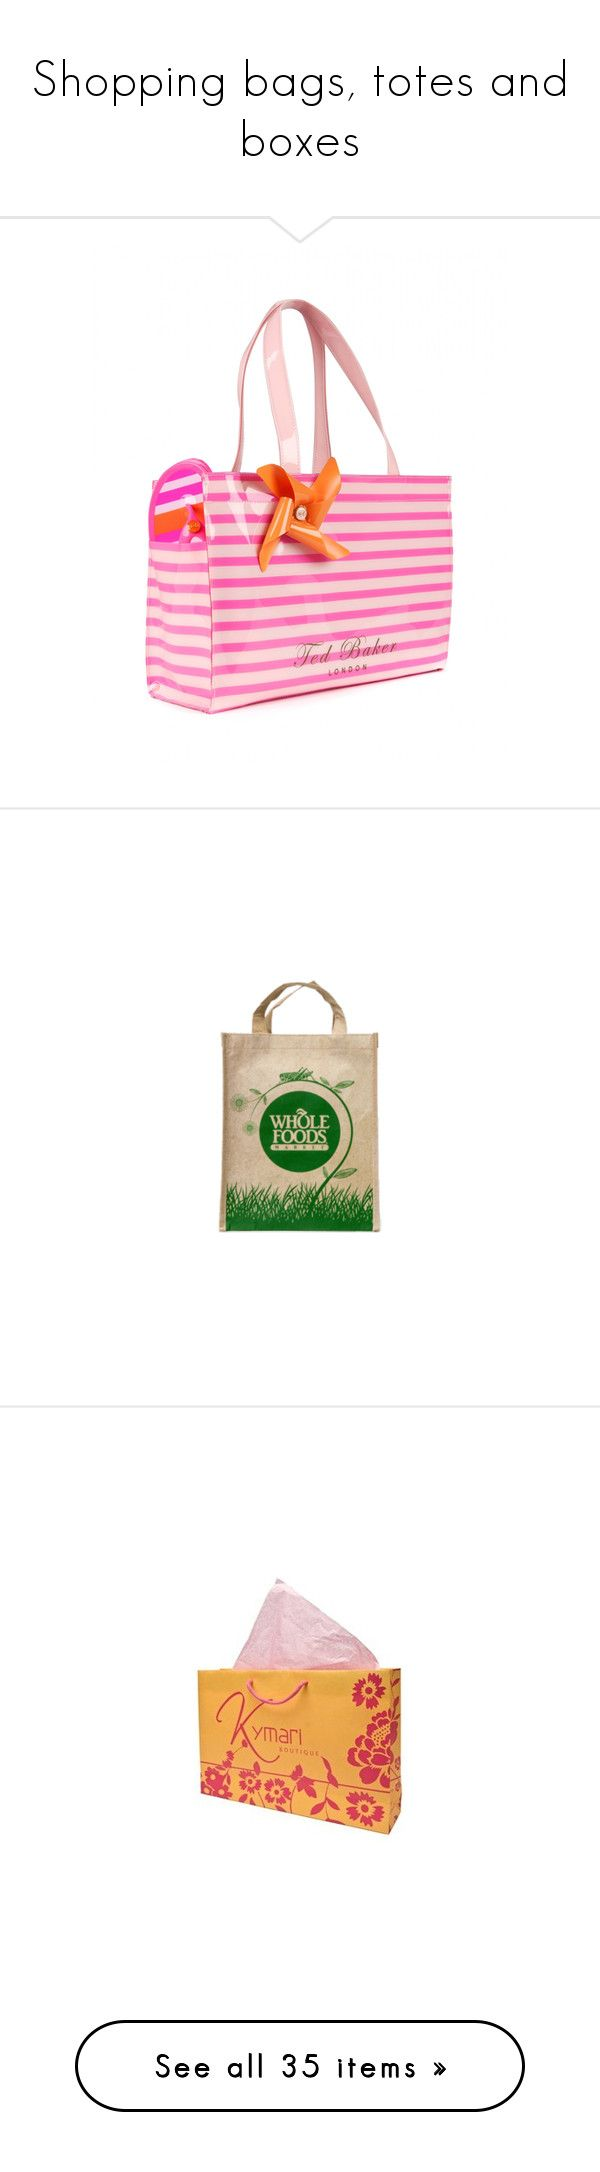 """""""Shopping bags, totes and boxes"""" by alleypea ❤ liked on Polyvore featuring nude, bags, handbags, tote bags, bright pink, ted baker shopper, striped tote bag, pink purse, shopping bag and ted baker tote bag"""